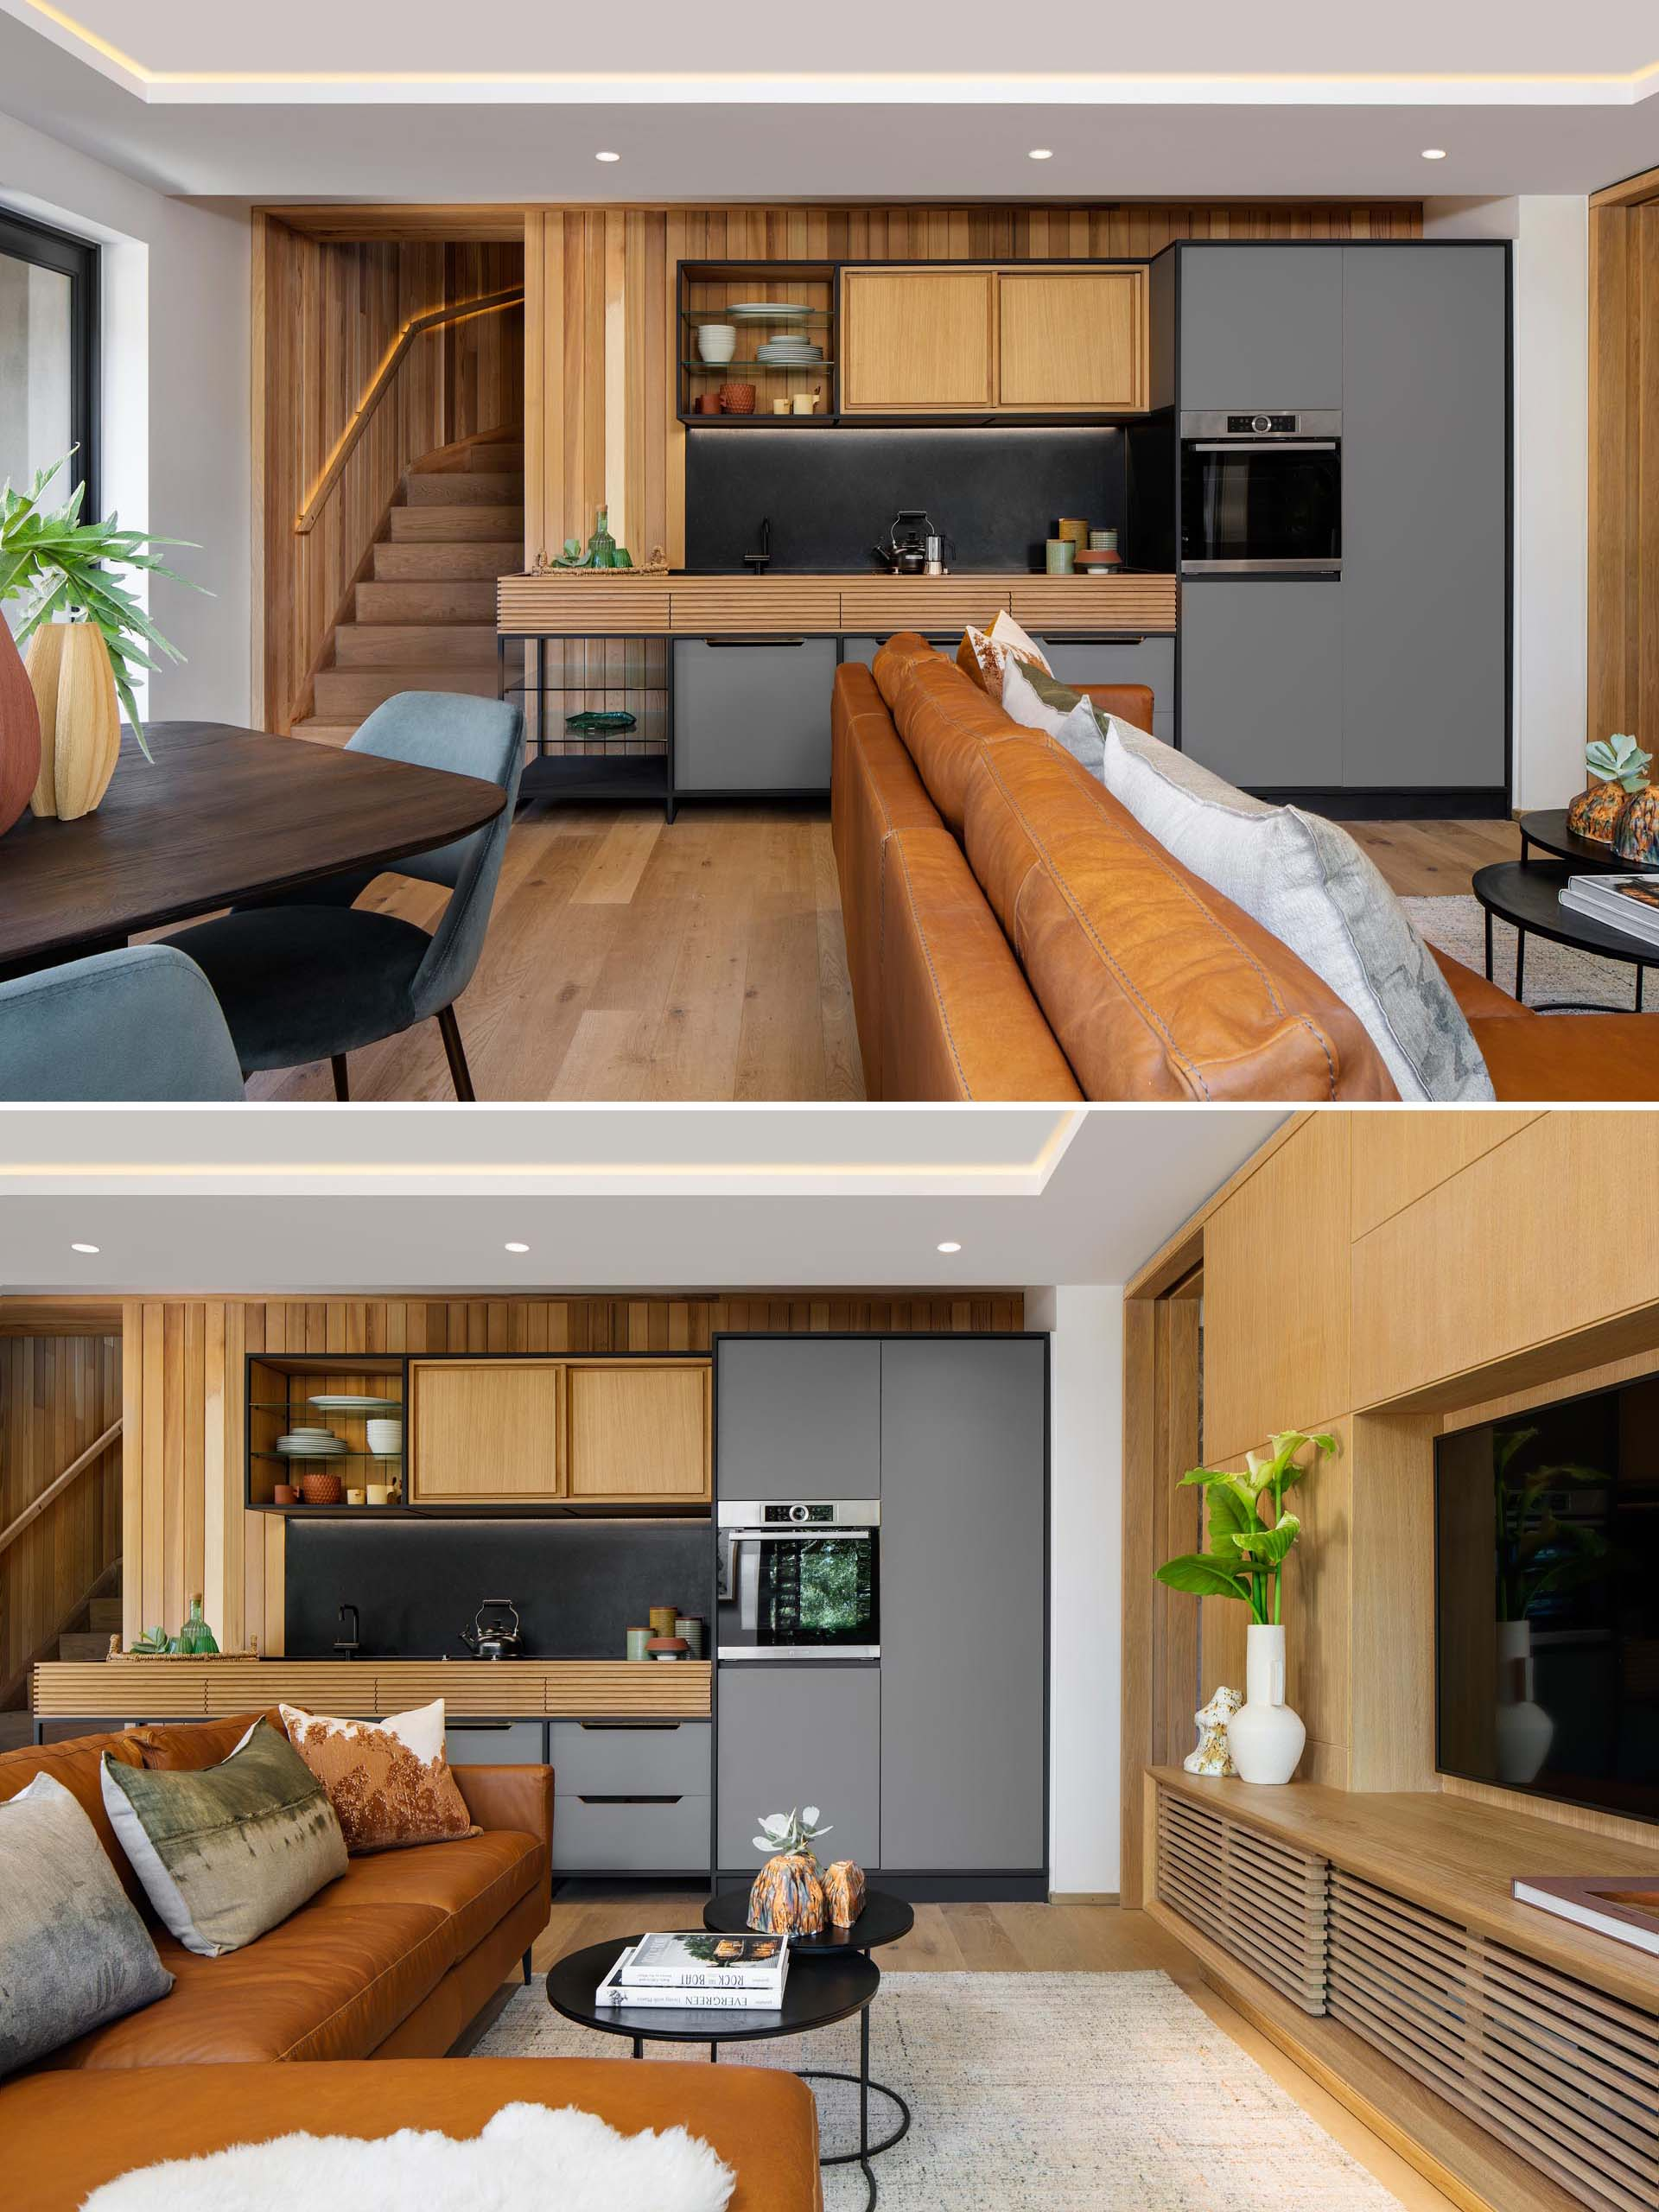 A modern guest suite with a kitchenette, living room, dining area, and separate bedroom with en-suite.